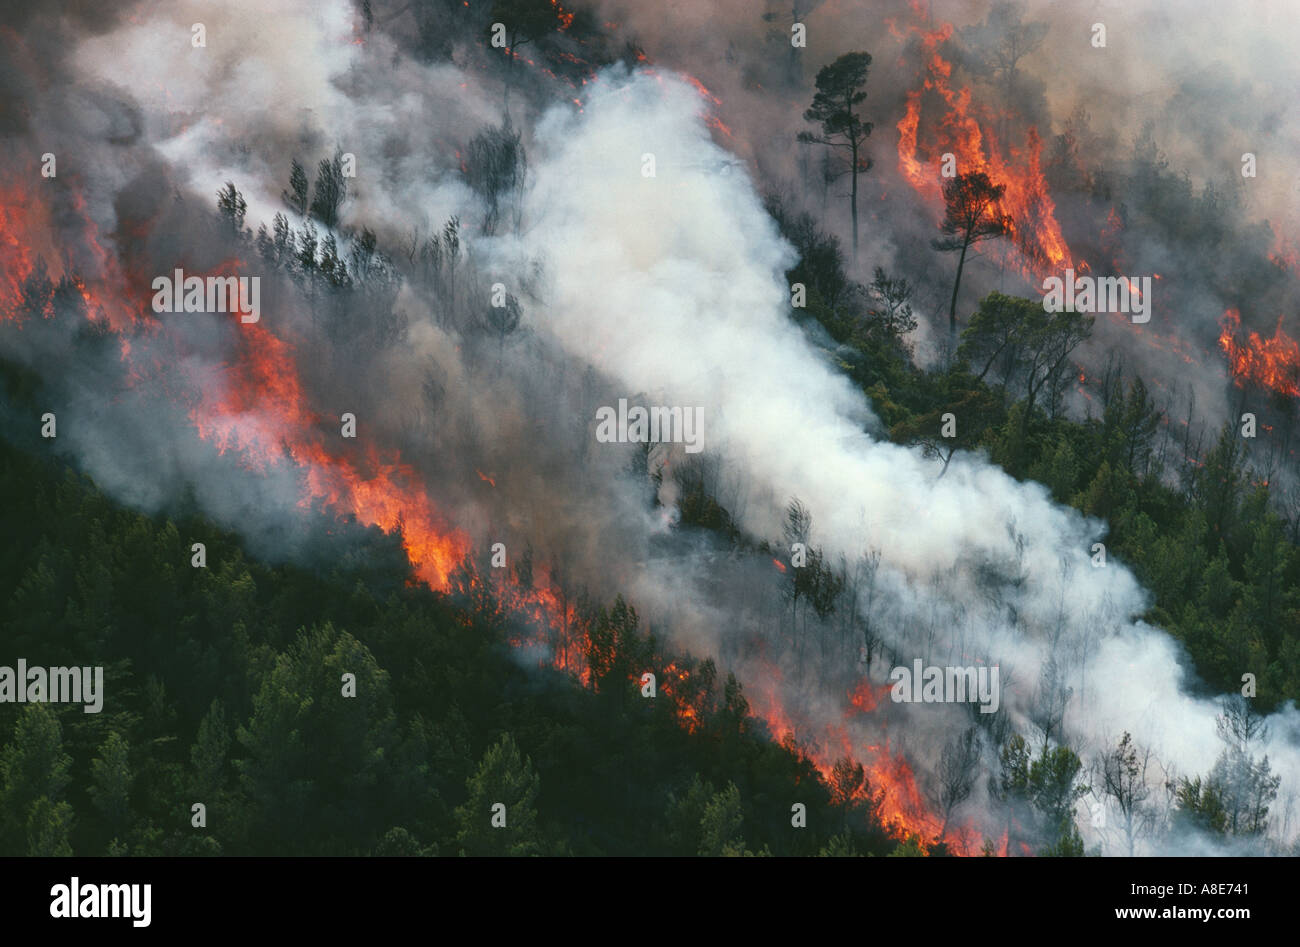 Aerial view of a wildfire and smoke near Cassis, Provence, France, Europe - Stock Image